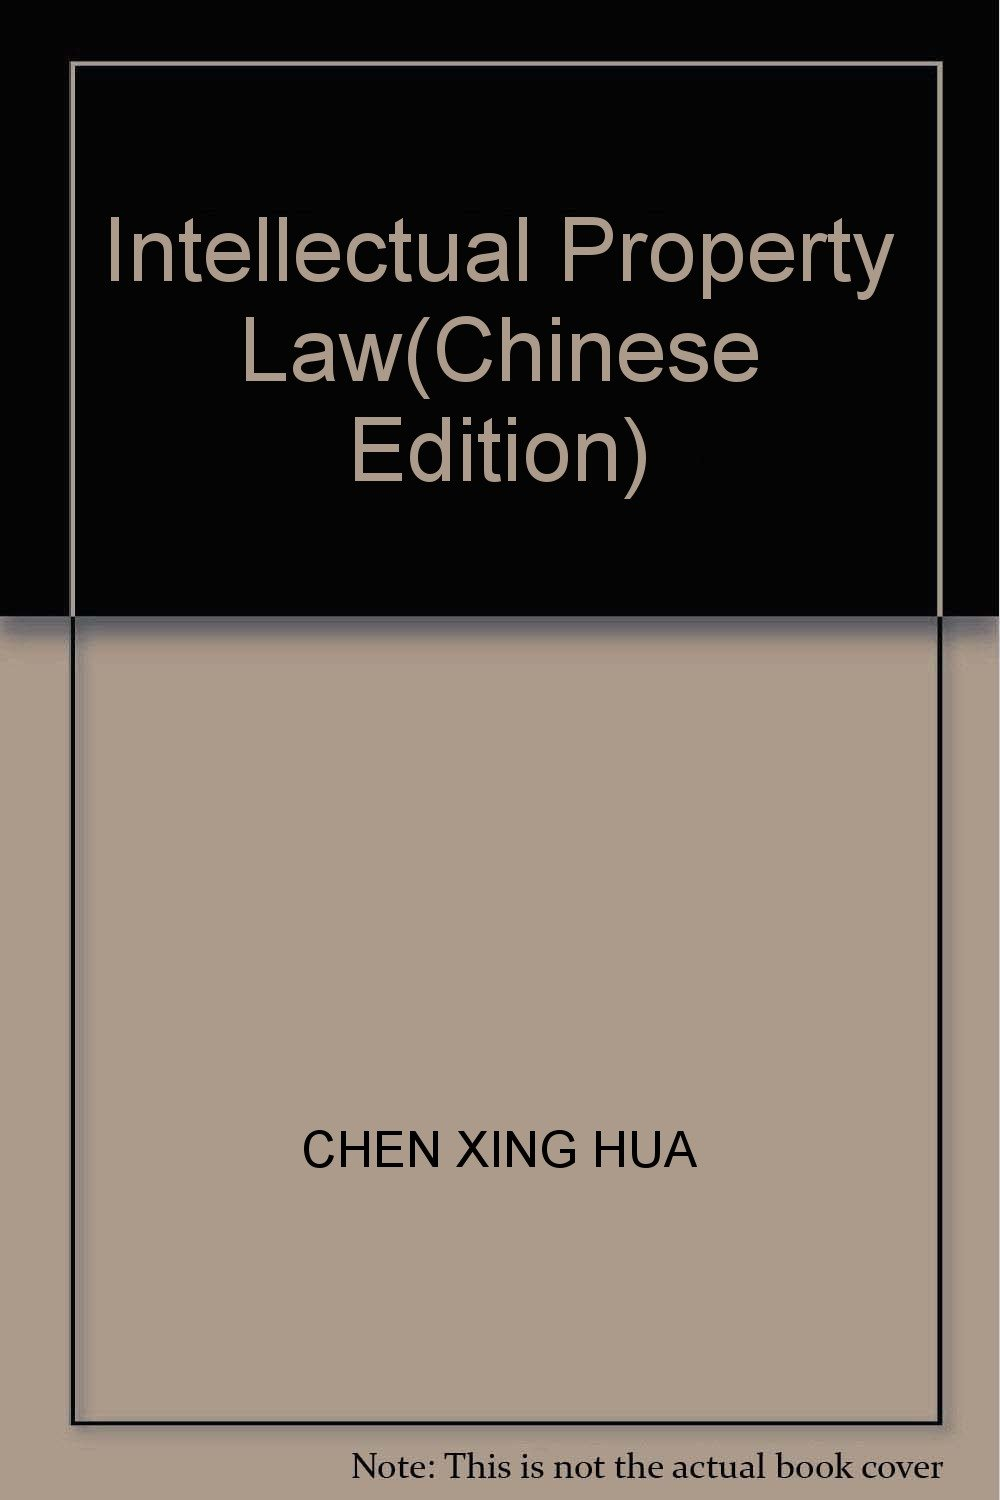 Intellectual Property Law(Chinese Edition) PDF